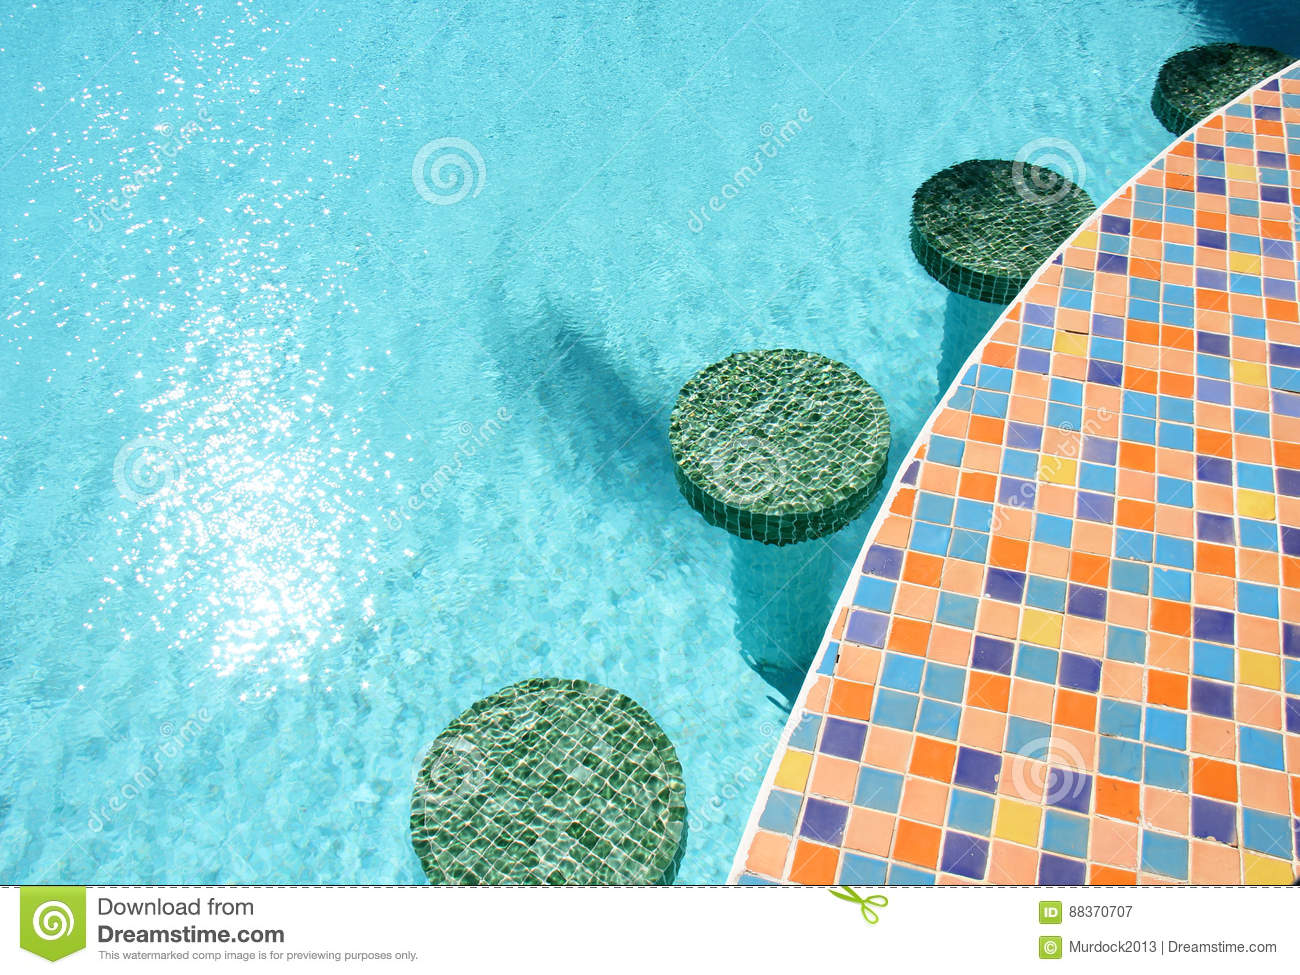 Swimming pool bar stools stock image. Image of relax - 88370707